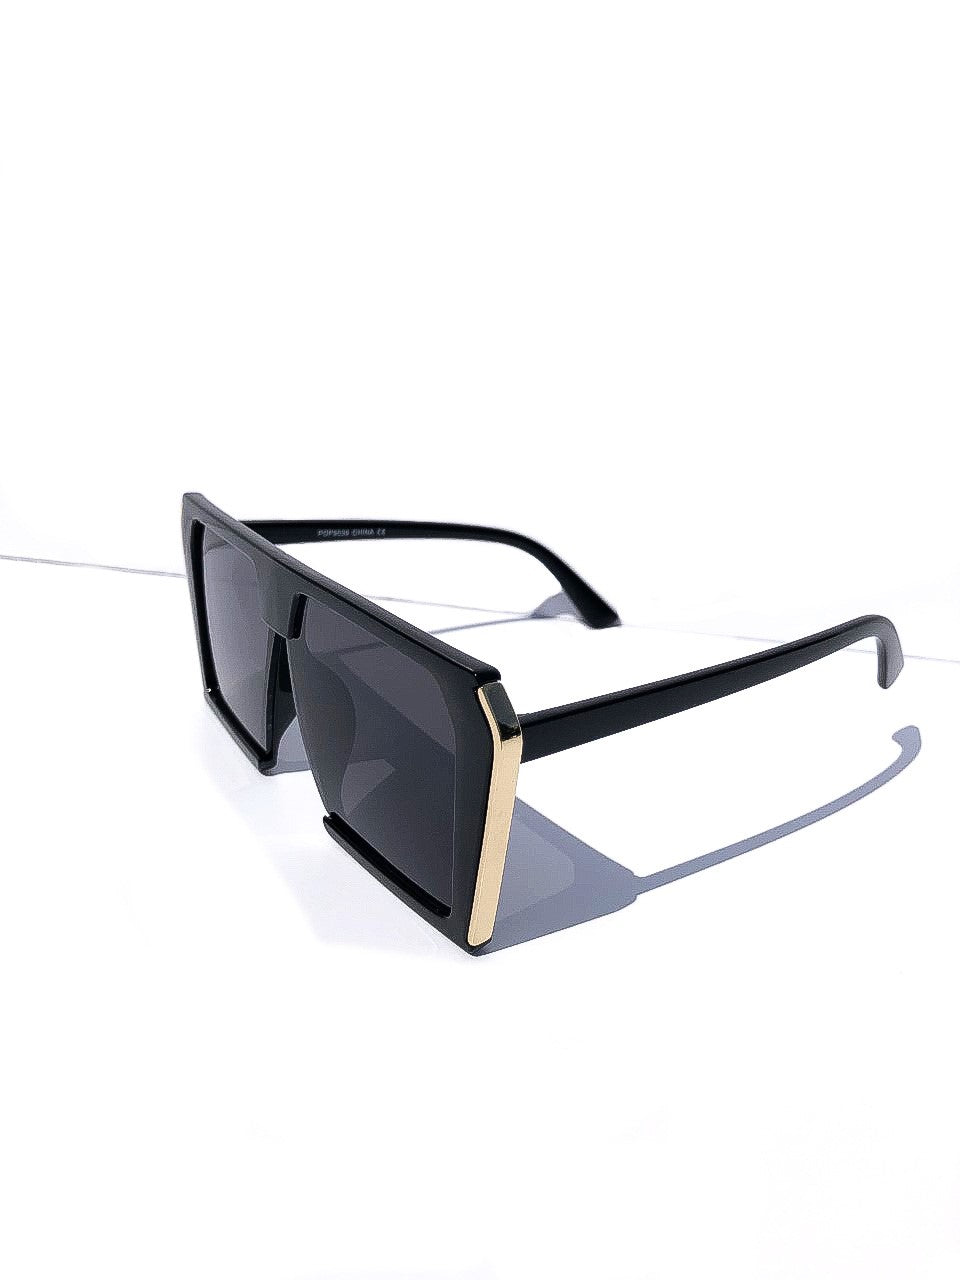 The 'Malibu' Sunglasses in Black